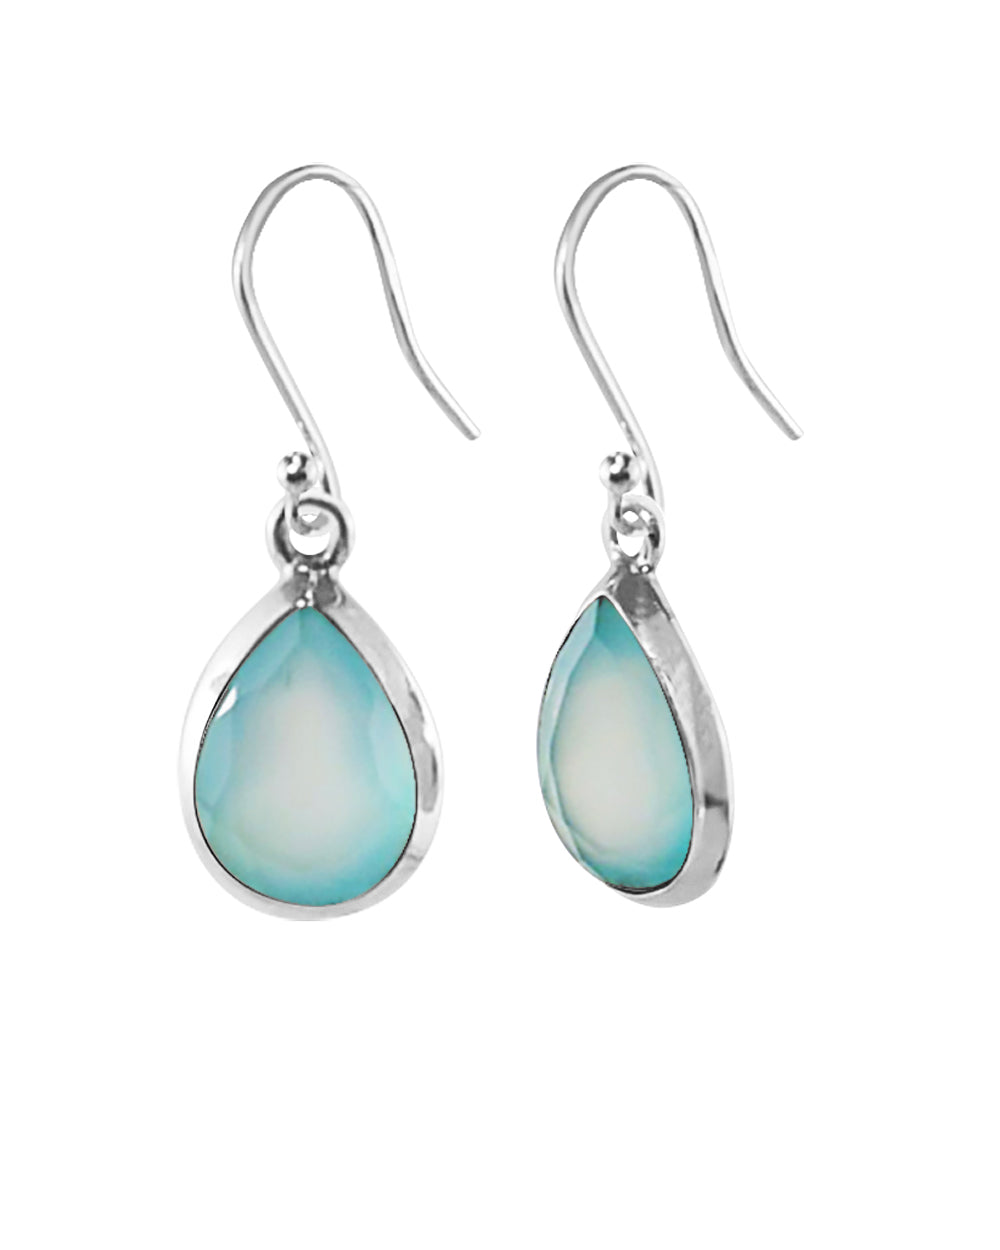 Pear Cut Natural Peruvian Opal Earrings in Sterling Silver